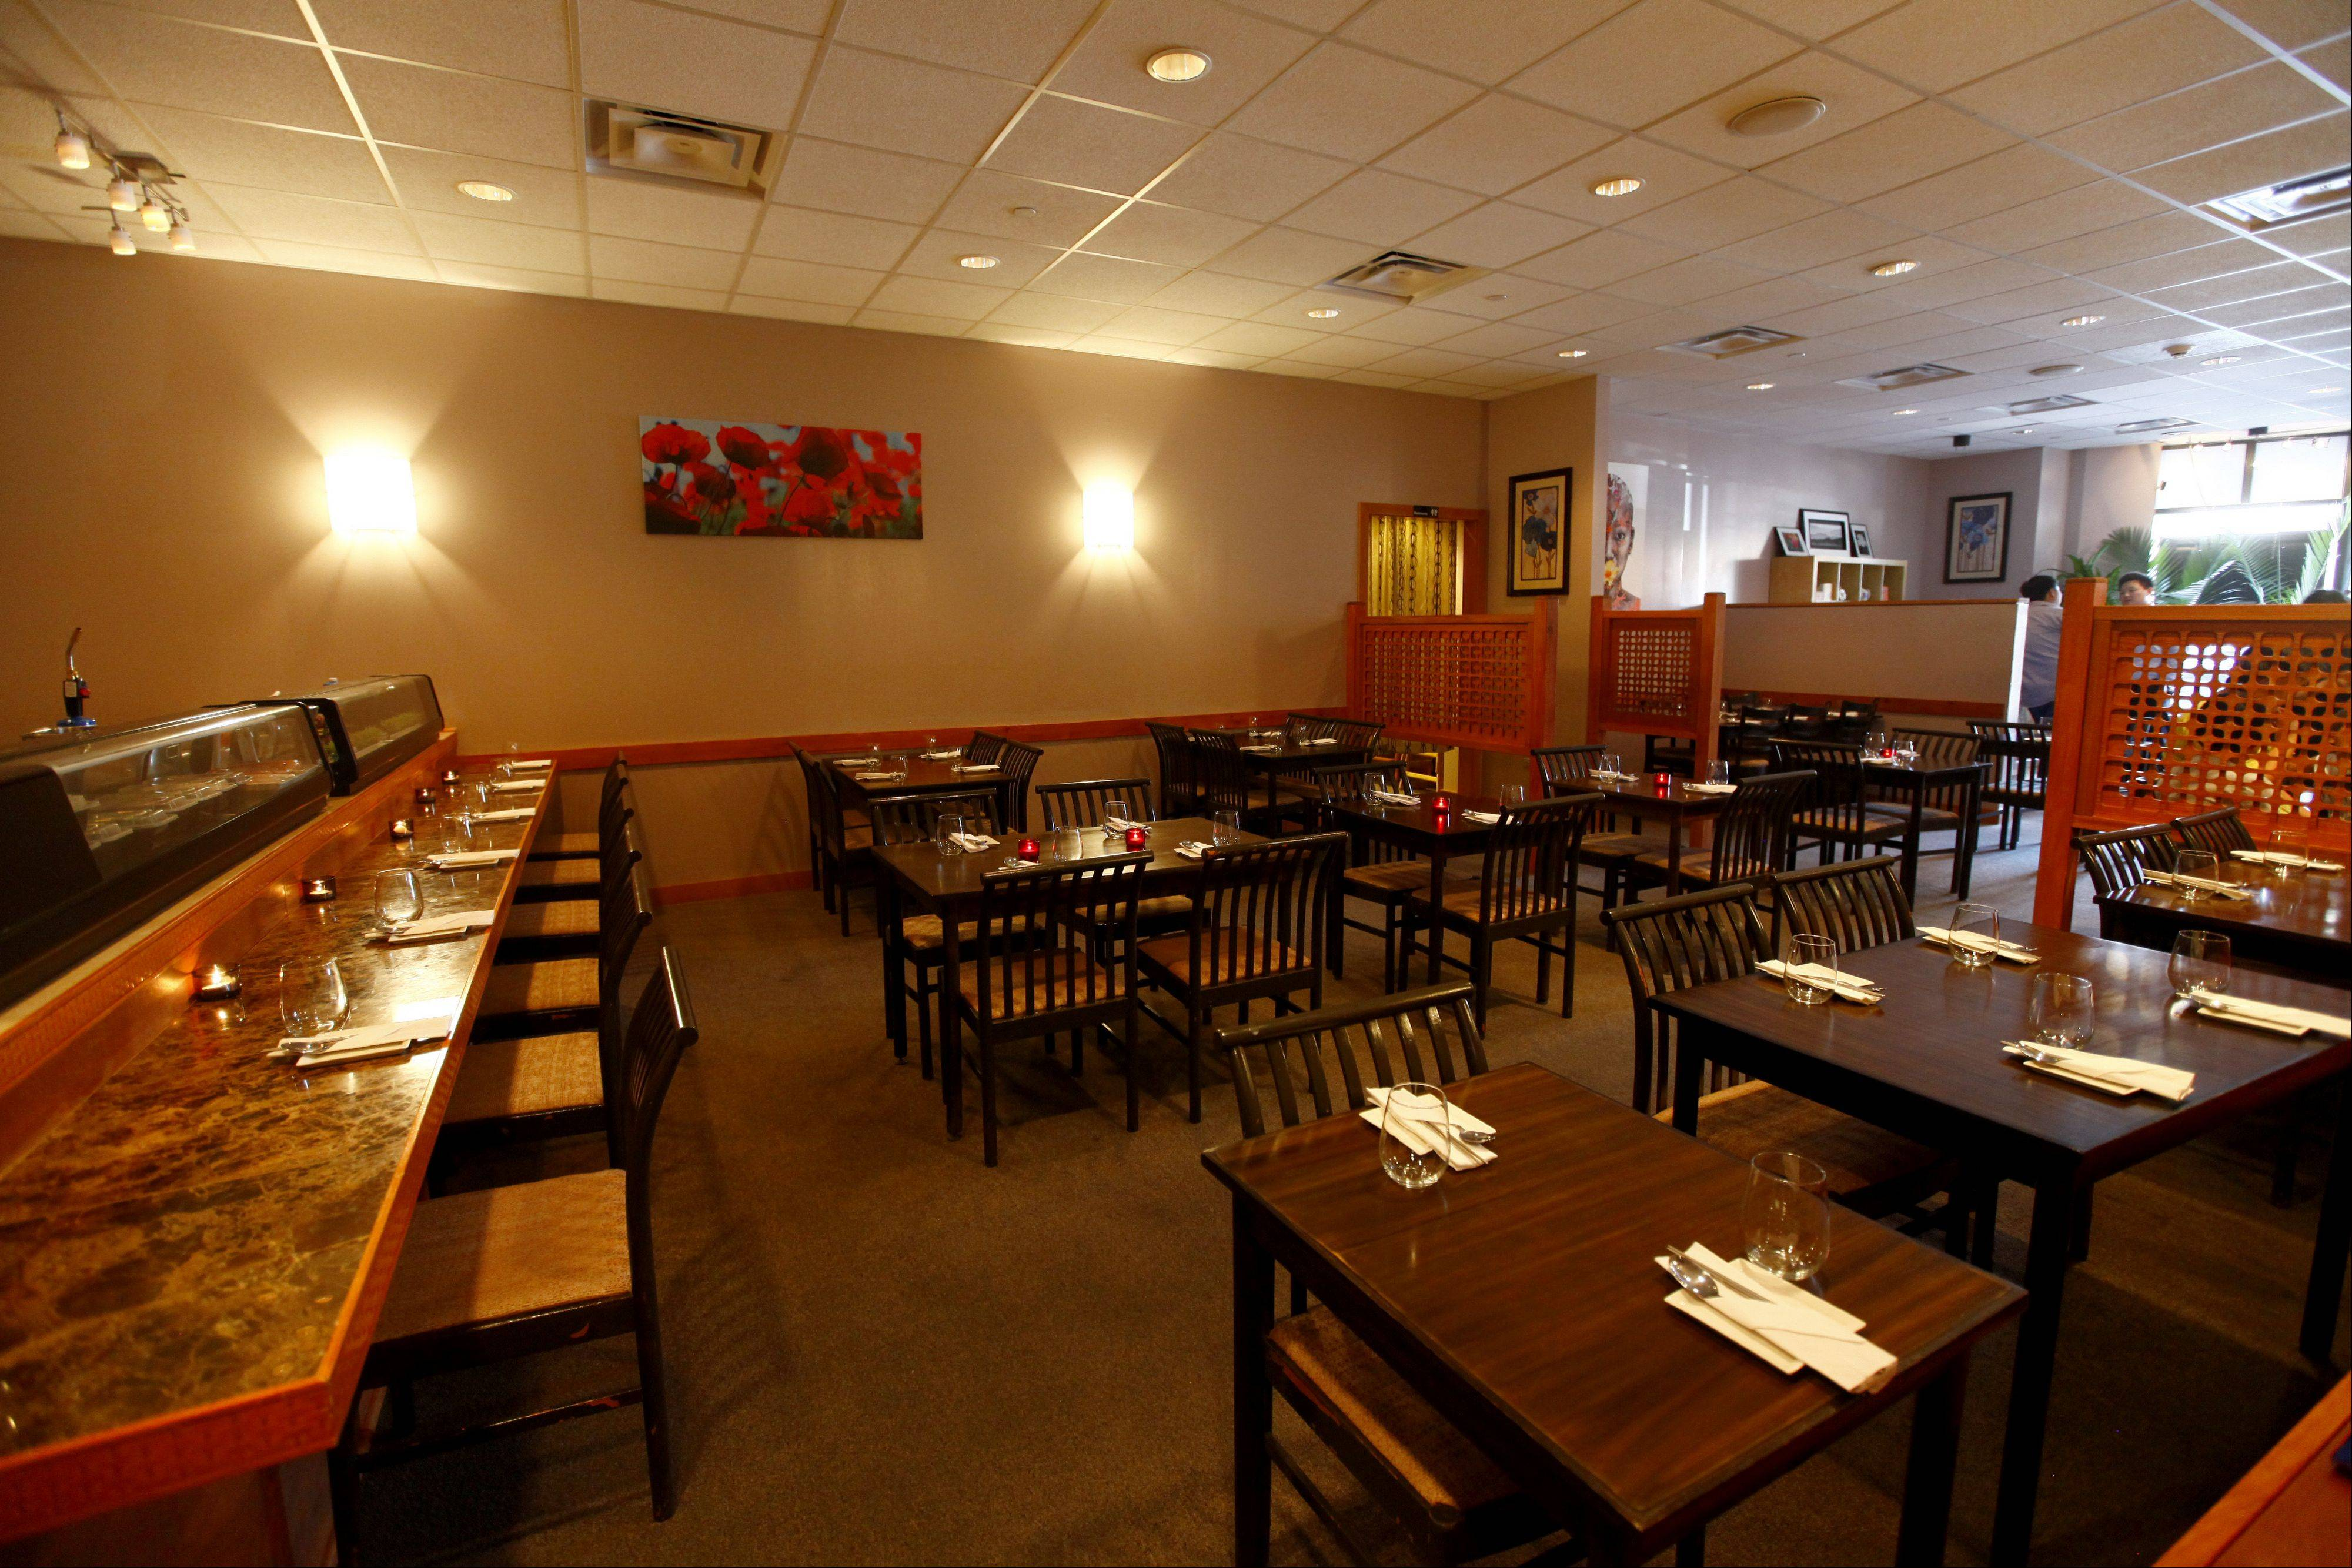 Ttowa opened recently in downtown Arlington Heights.